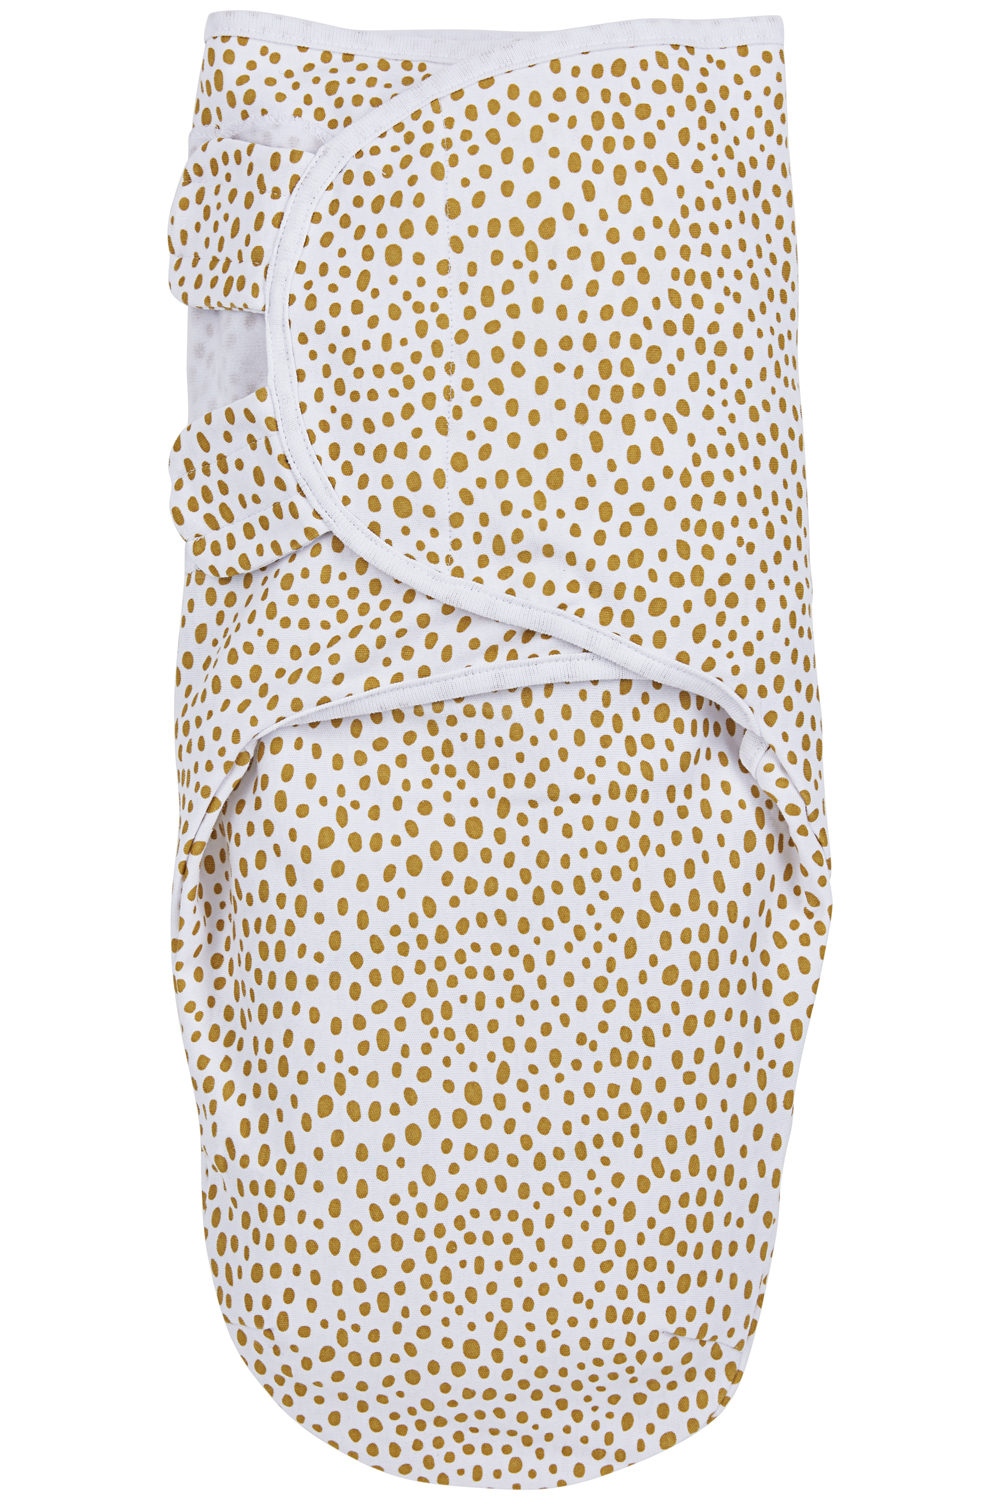 Swaddlemeyco Cheetah - Honey Gold - 0-3 Maand